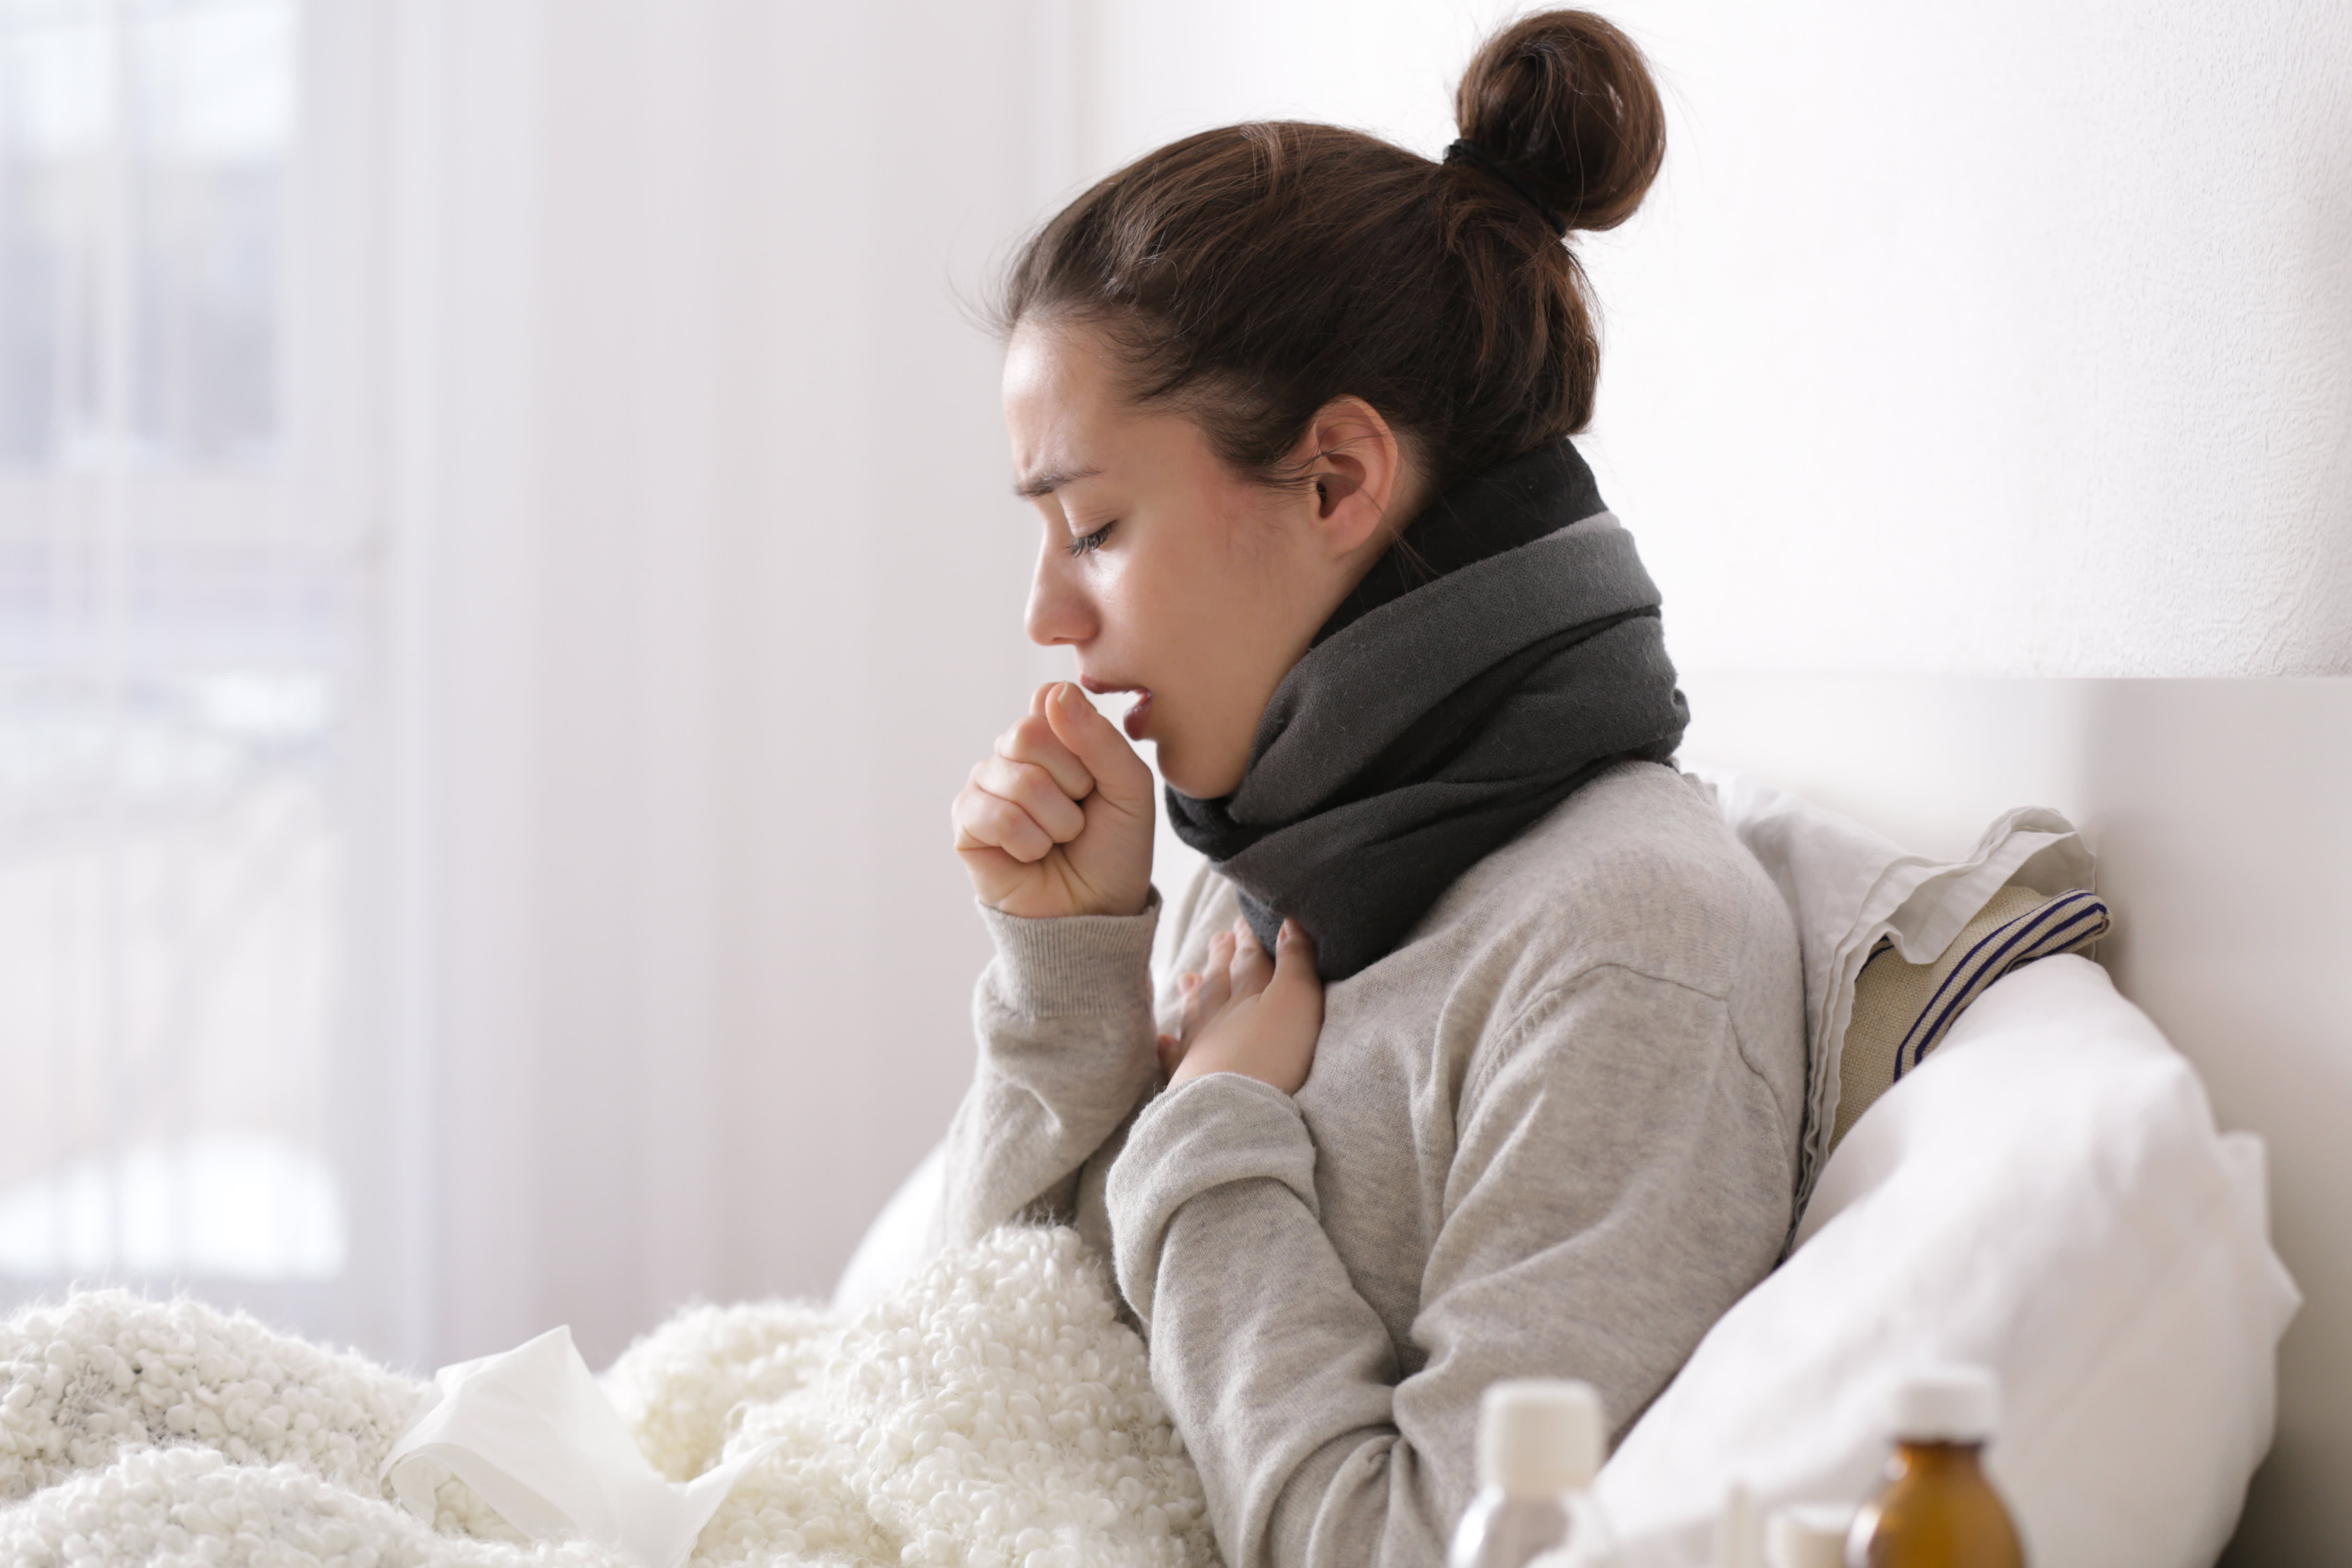 Is Coughing A Sign of Lung Cancer?